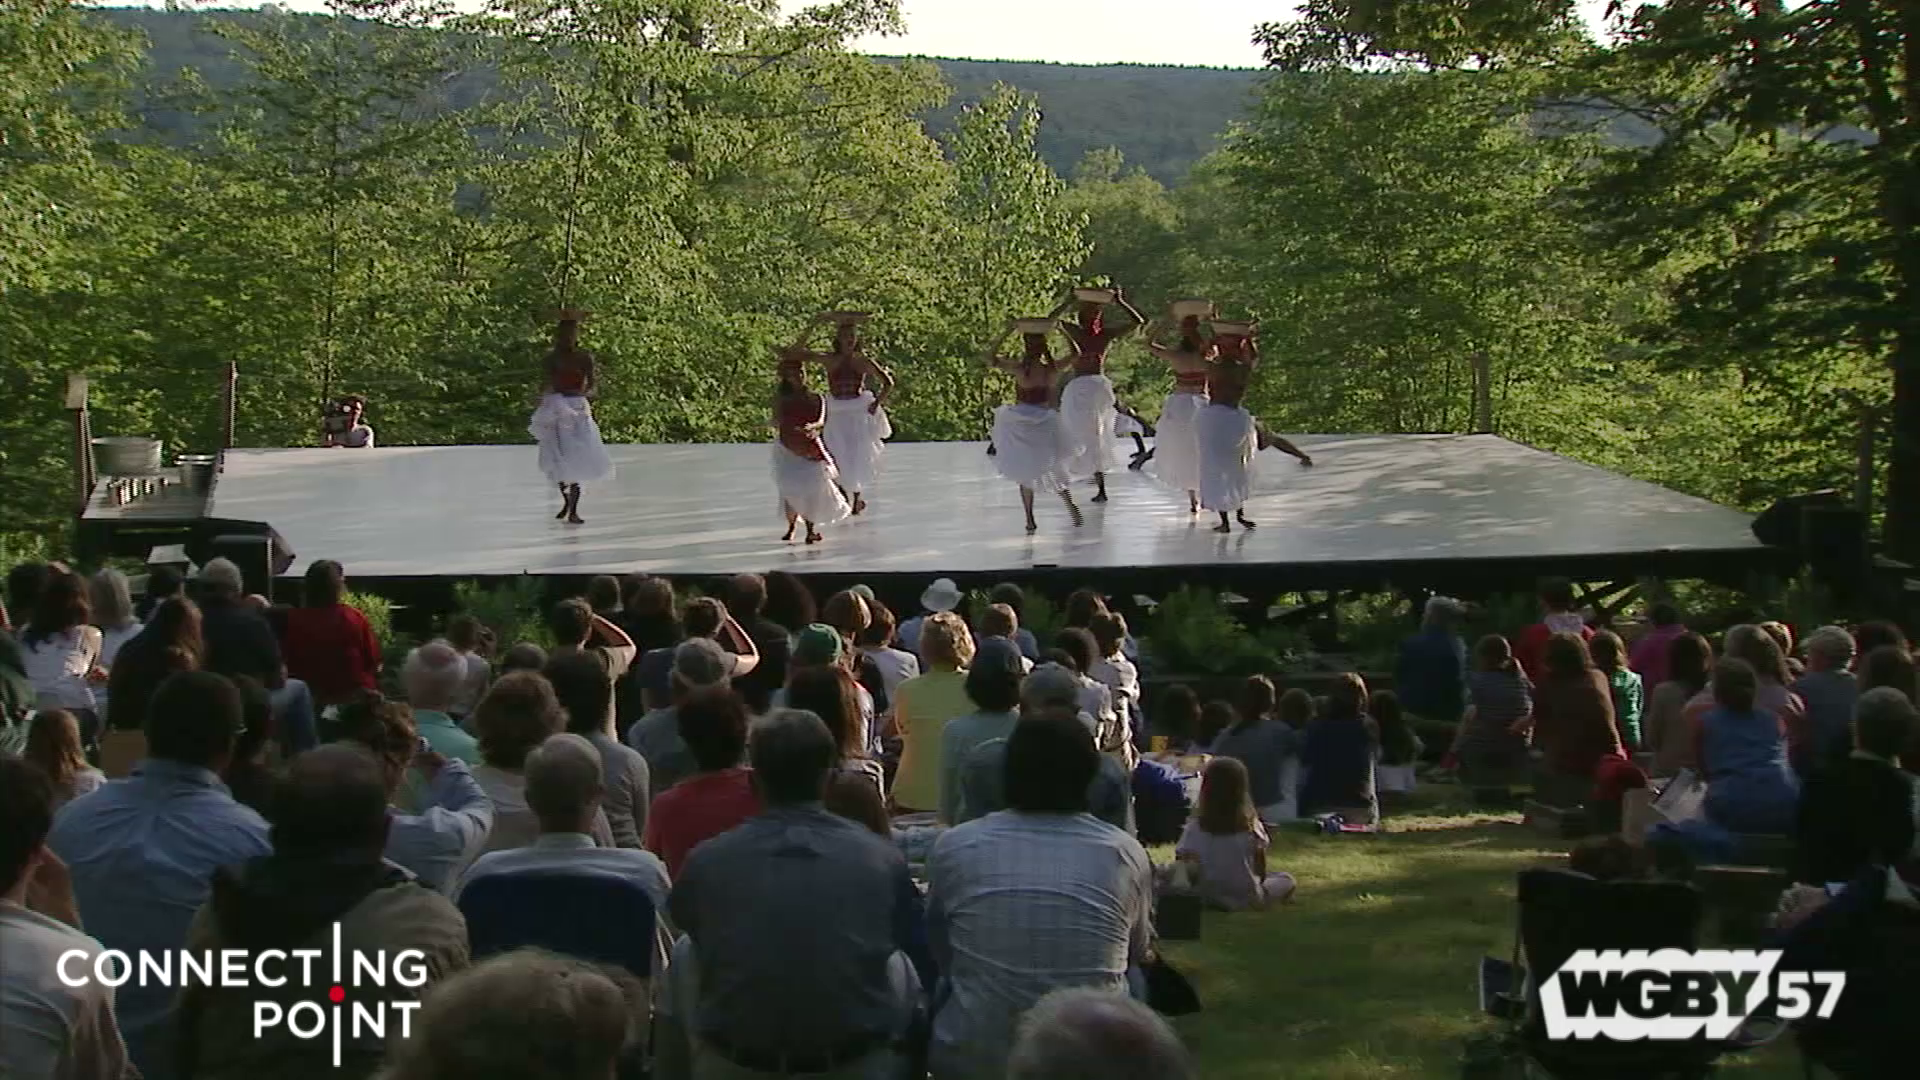 """Jacob's Pillow has been lauded as a """"hub and mecca of dancing"""" by TIME Magazine. A cultural summertime tradition in the Berkshires, """"The Pillow,"""" located in Becket, is a 163-acre National Historic Landmark and home to America's longest-running international dance festival."""